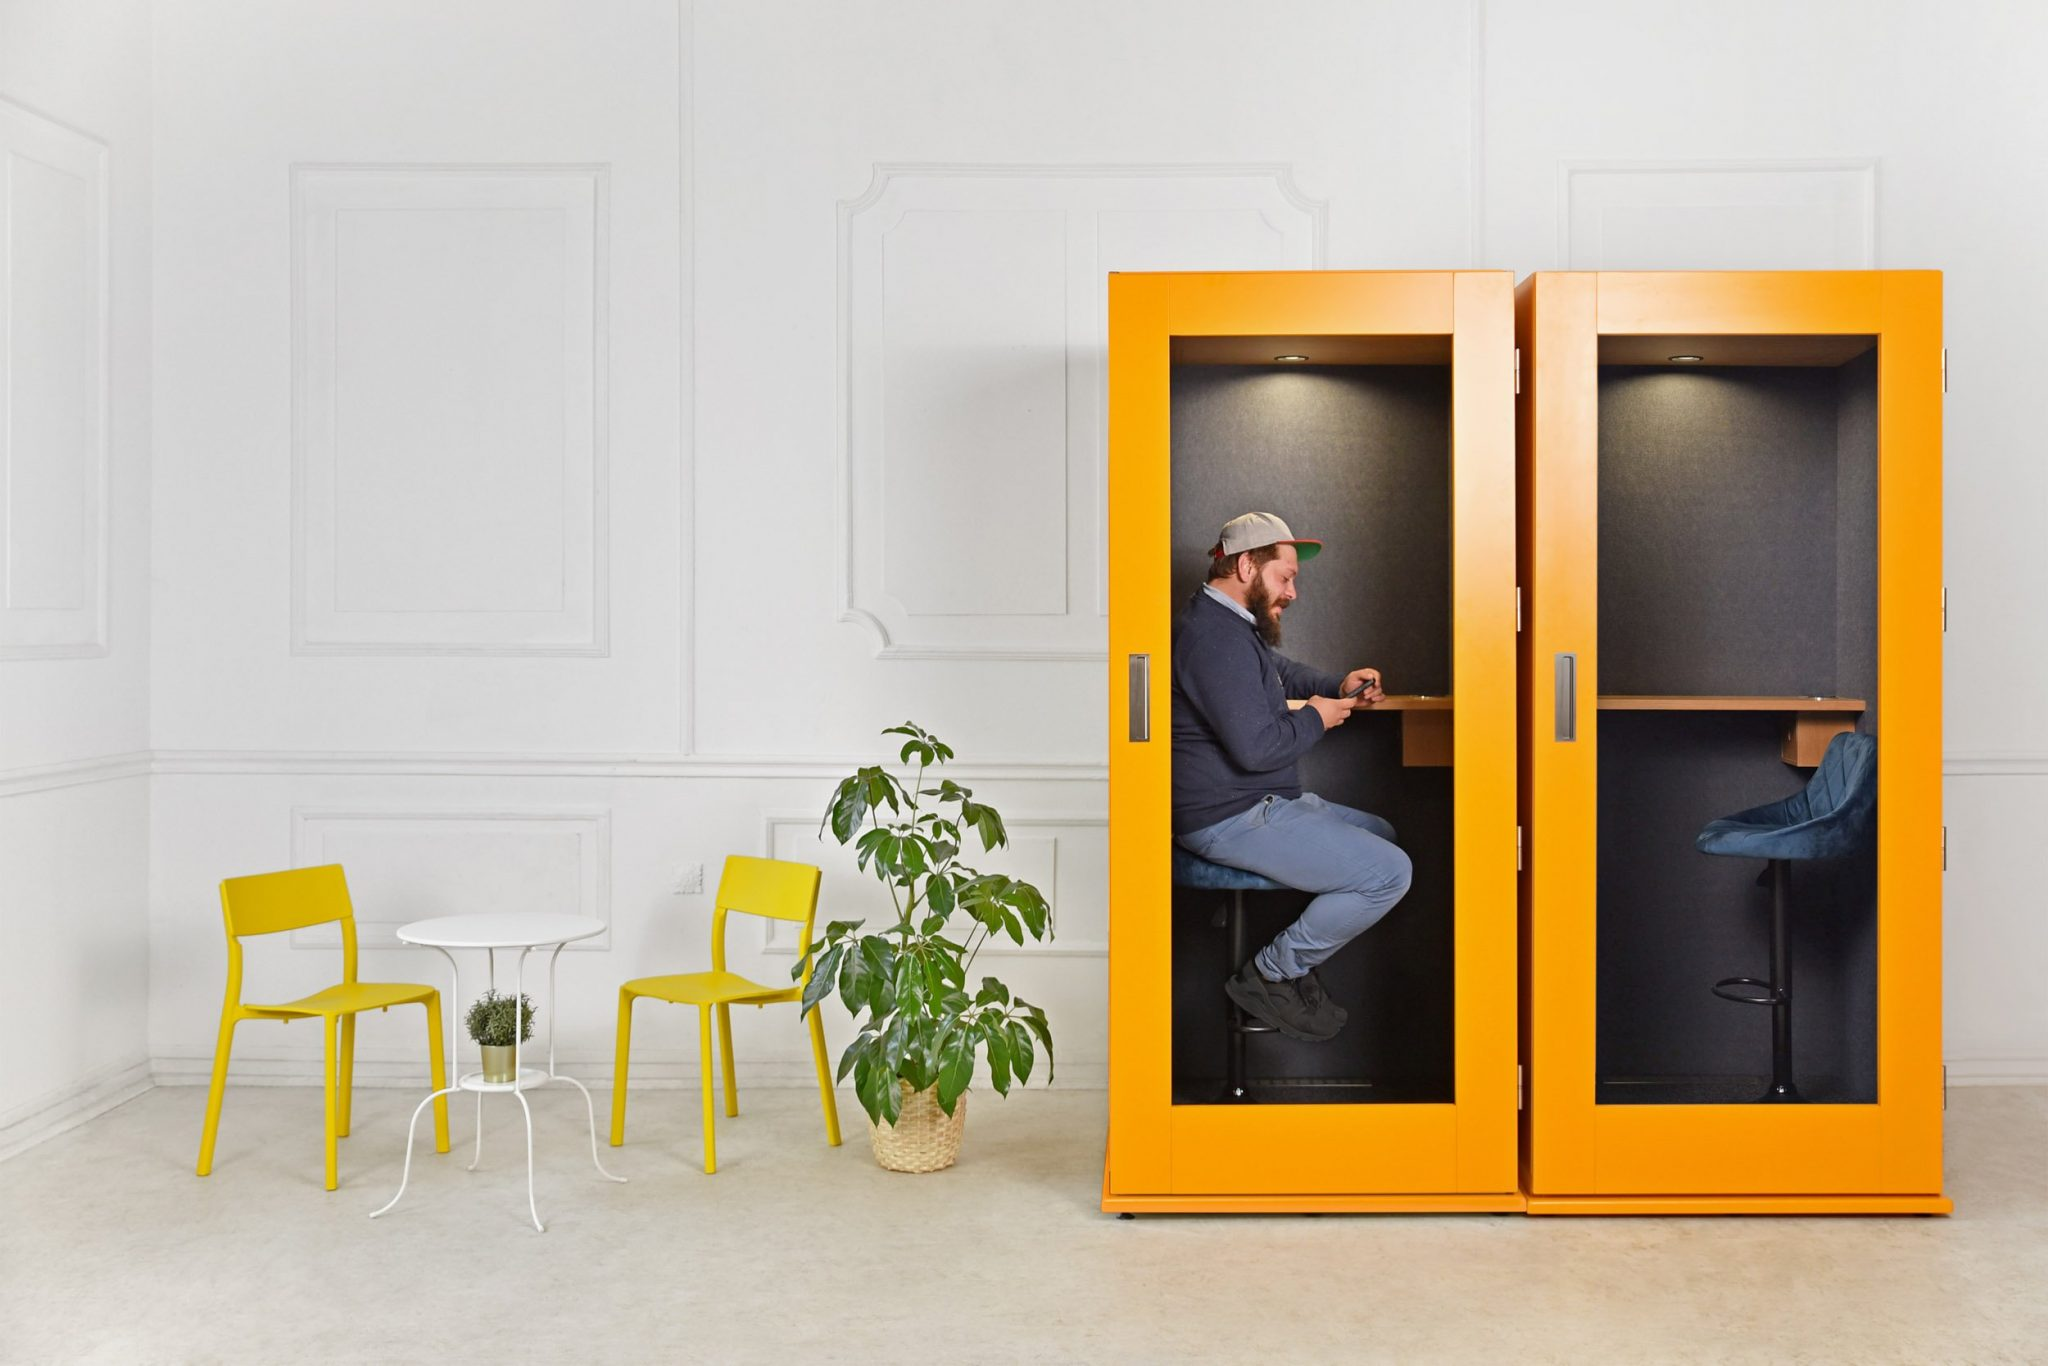 image of MEAVO phone booths